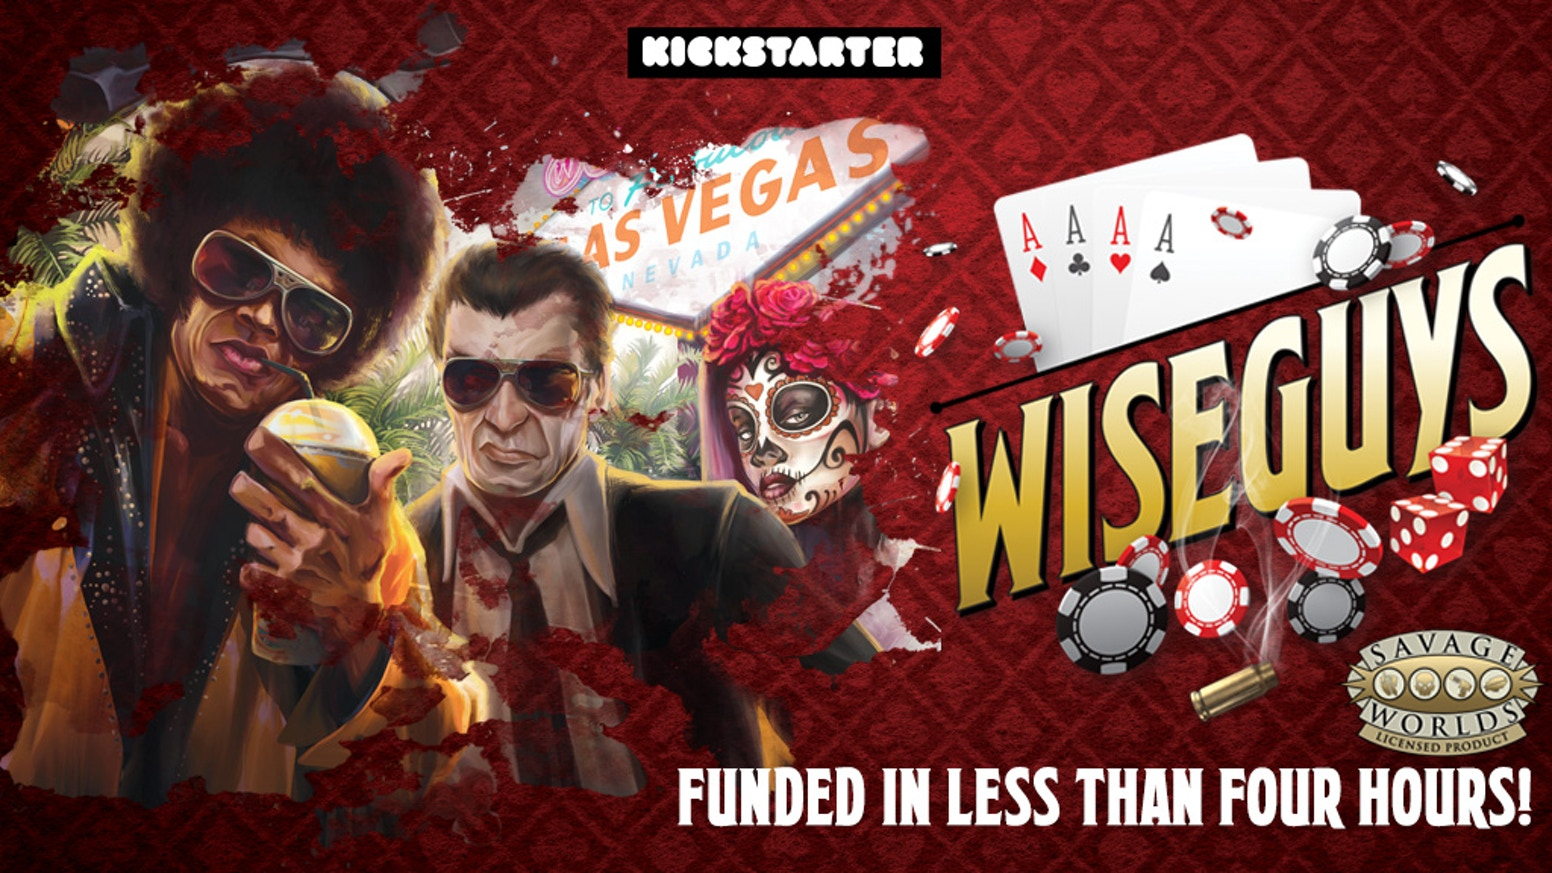 Wiseguys, a Las Vegas Mafia setting and guide to organized crime for the Savage Worlds Roleplaying Game.